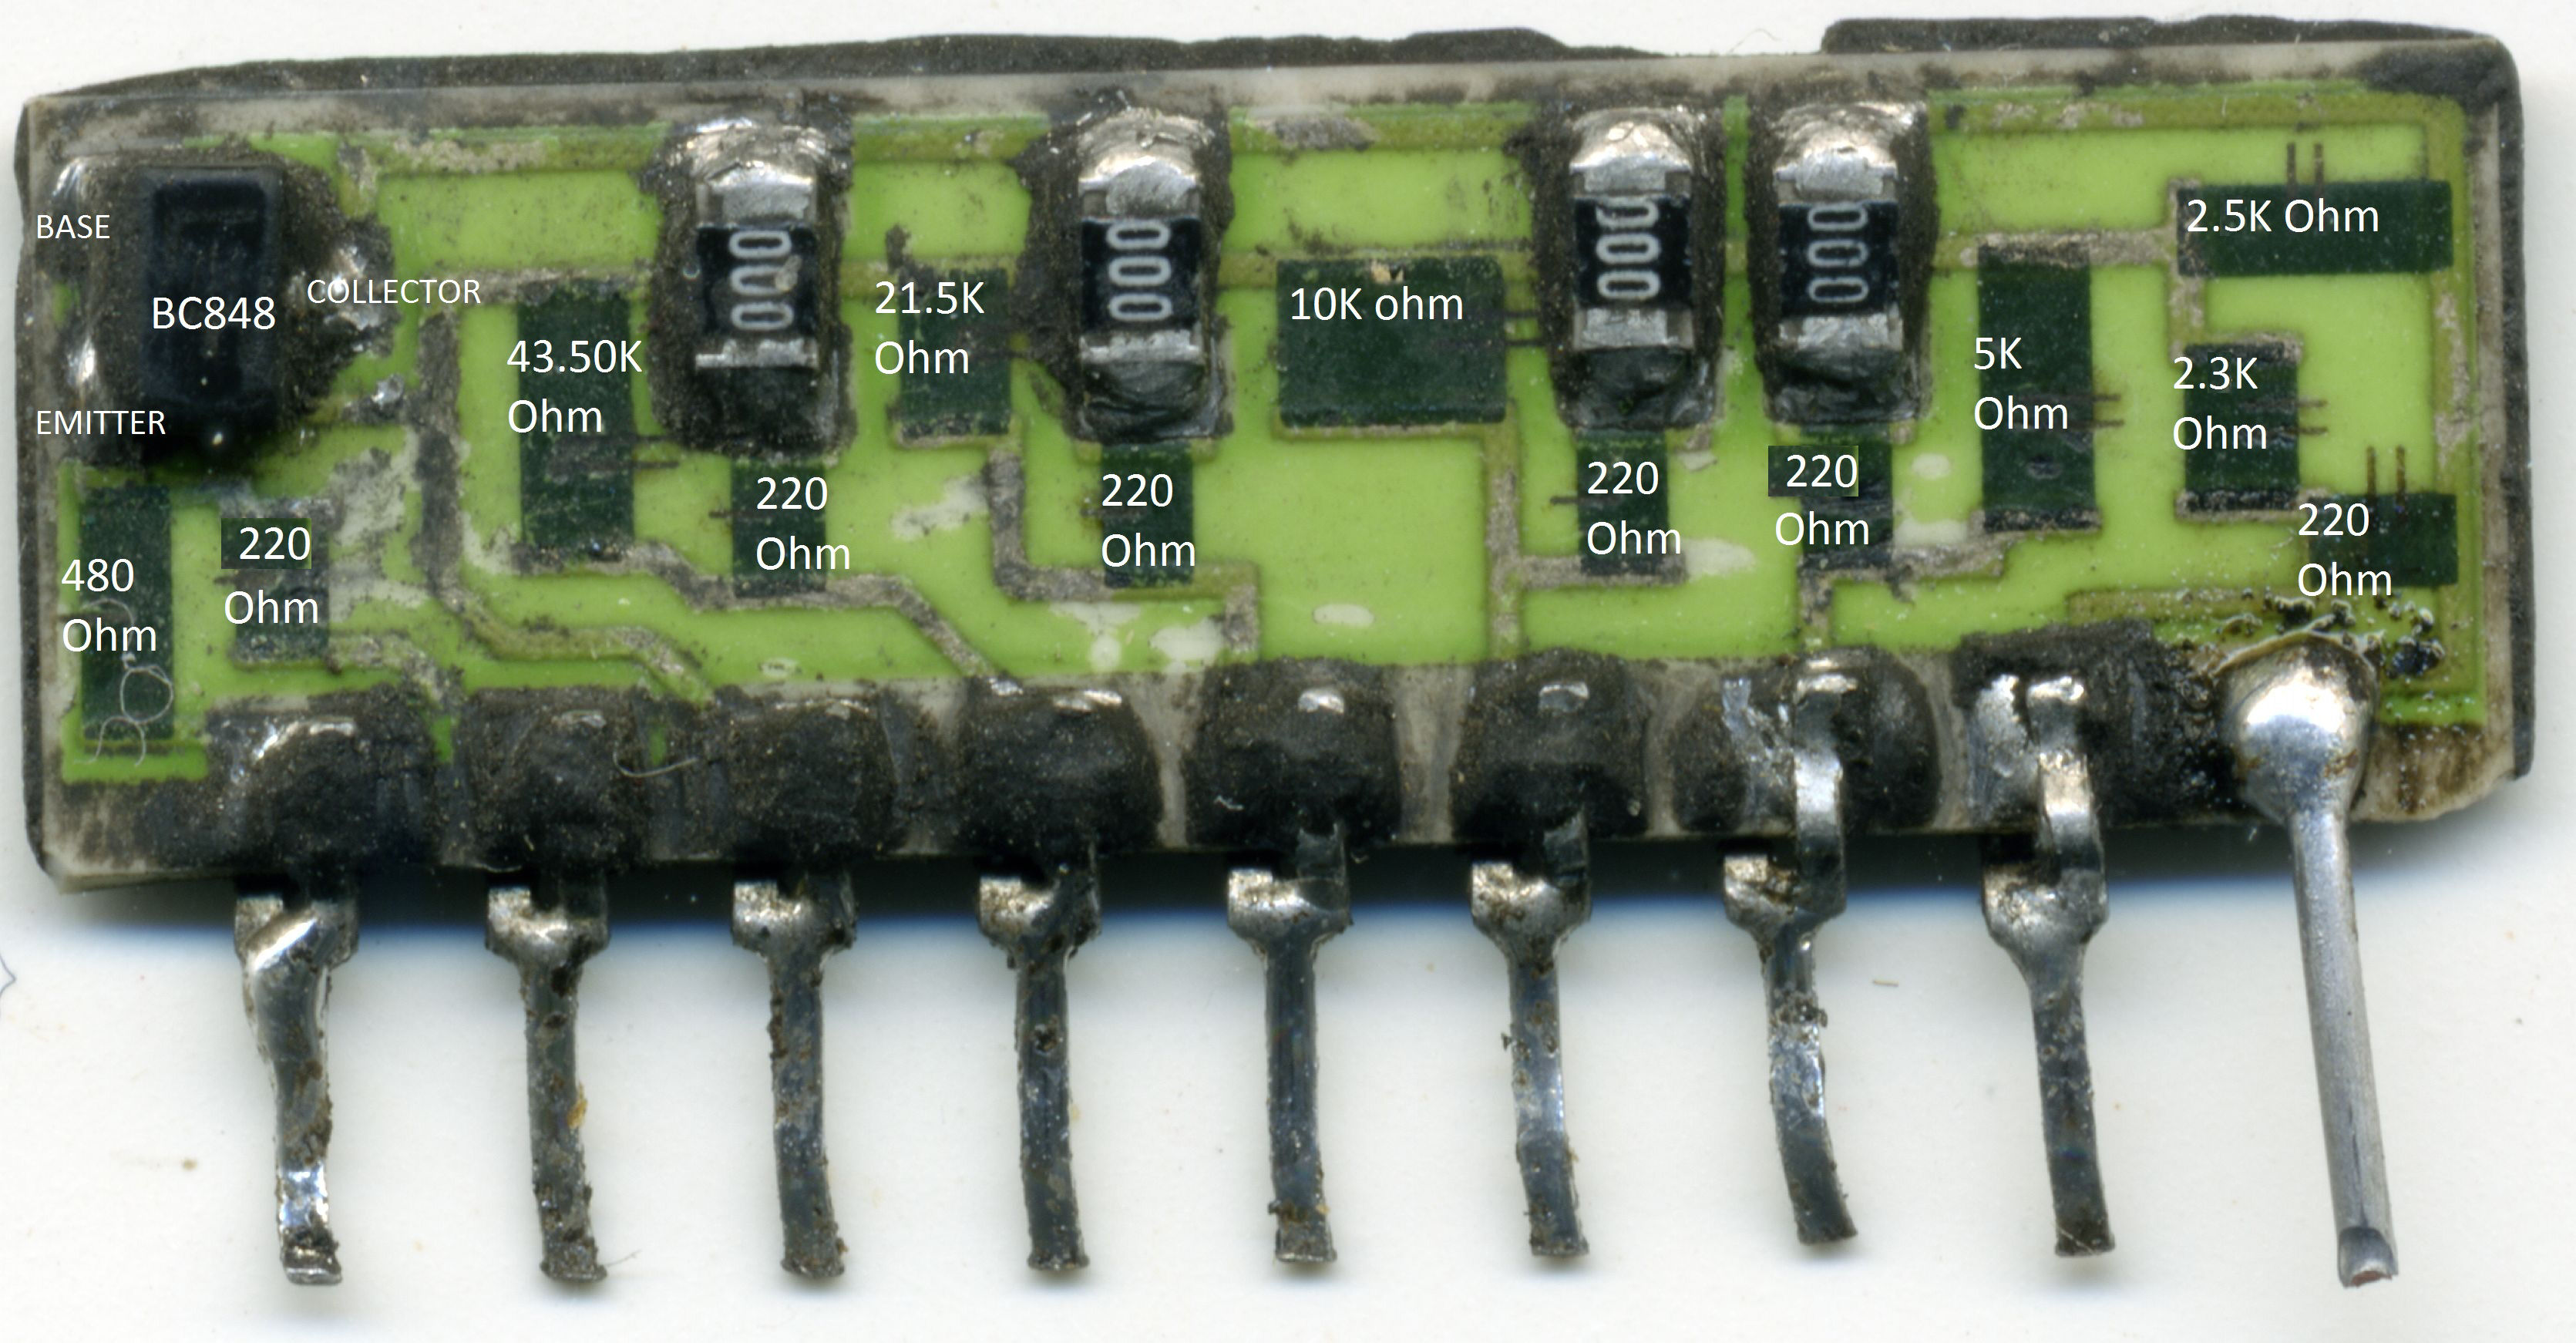 Page 21 Printed Circuit Board Of Transistors Capacitors And Other Components Is Nothing More Than A R 2r Resistor Ladder With The Resistors Values Tipically Doubled Starting From 25kohm Up To 4350kohmthe Npn Transistor I